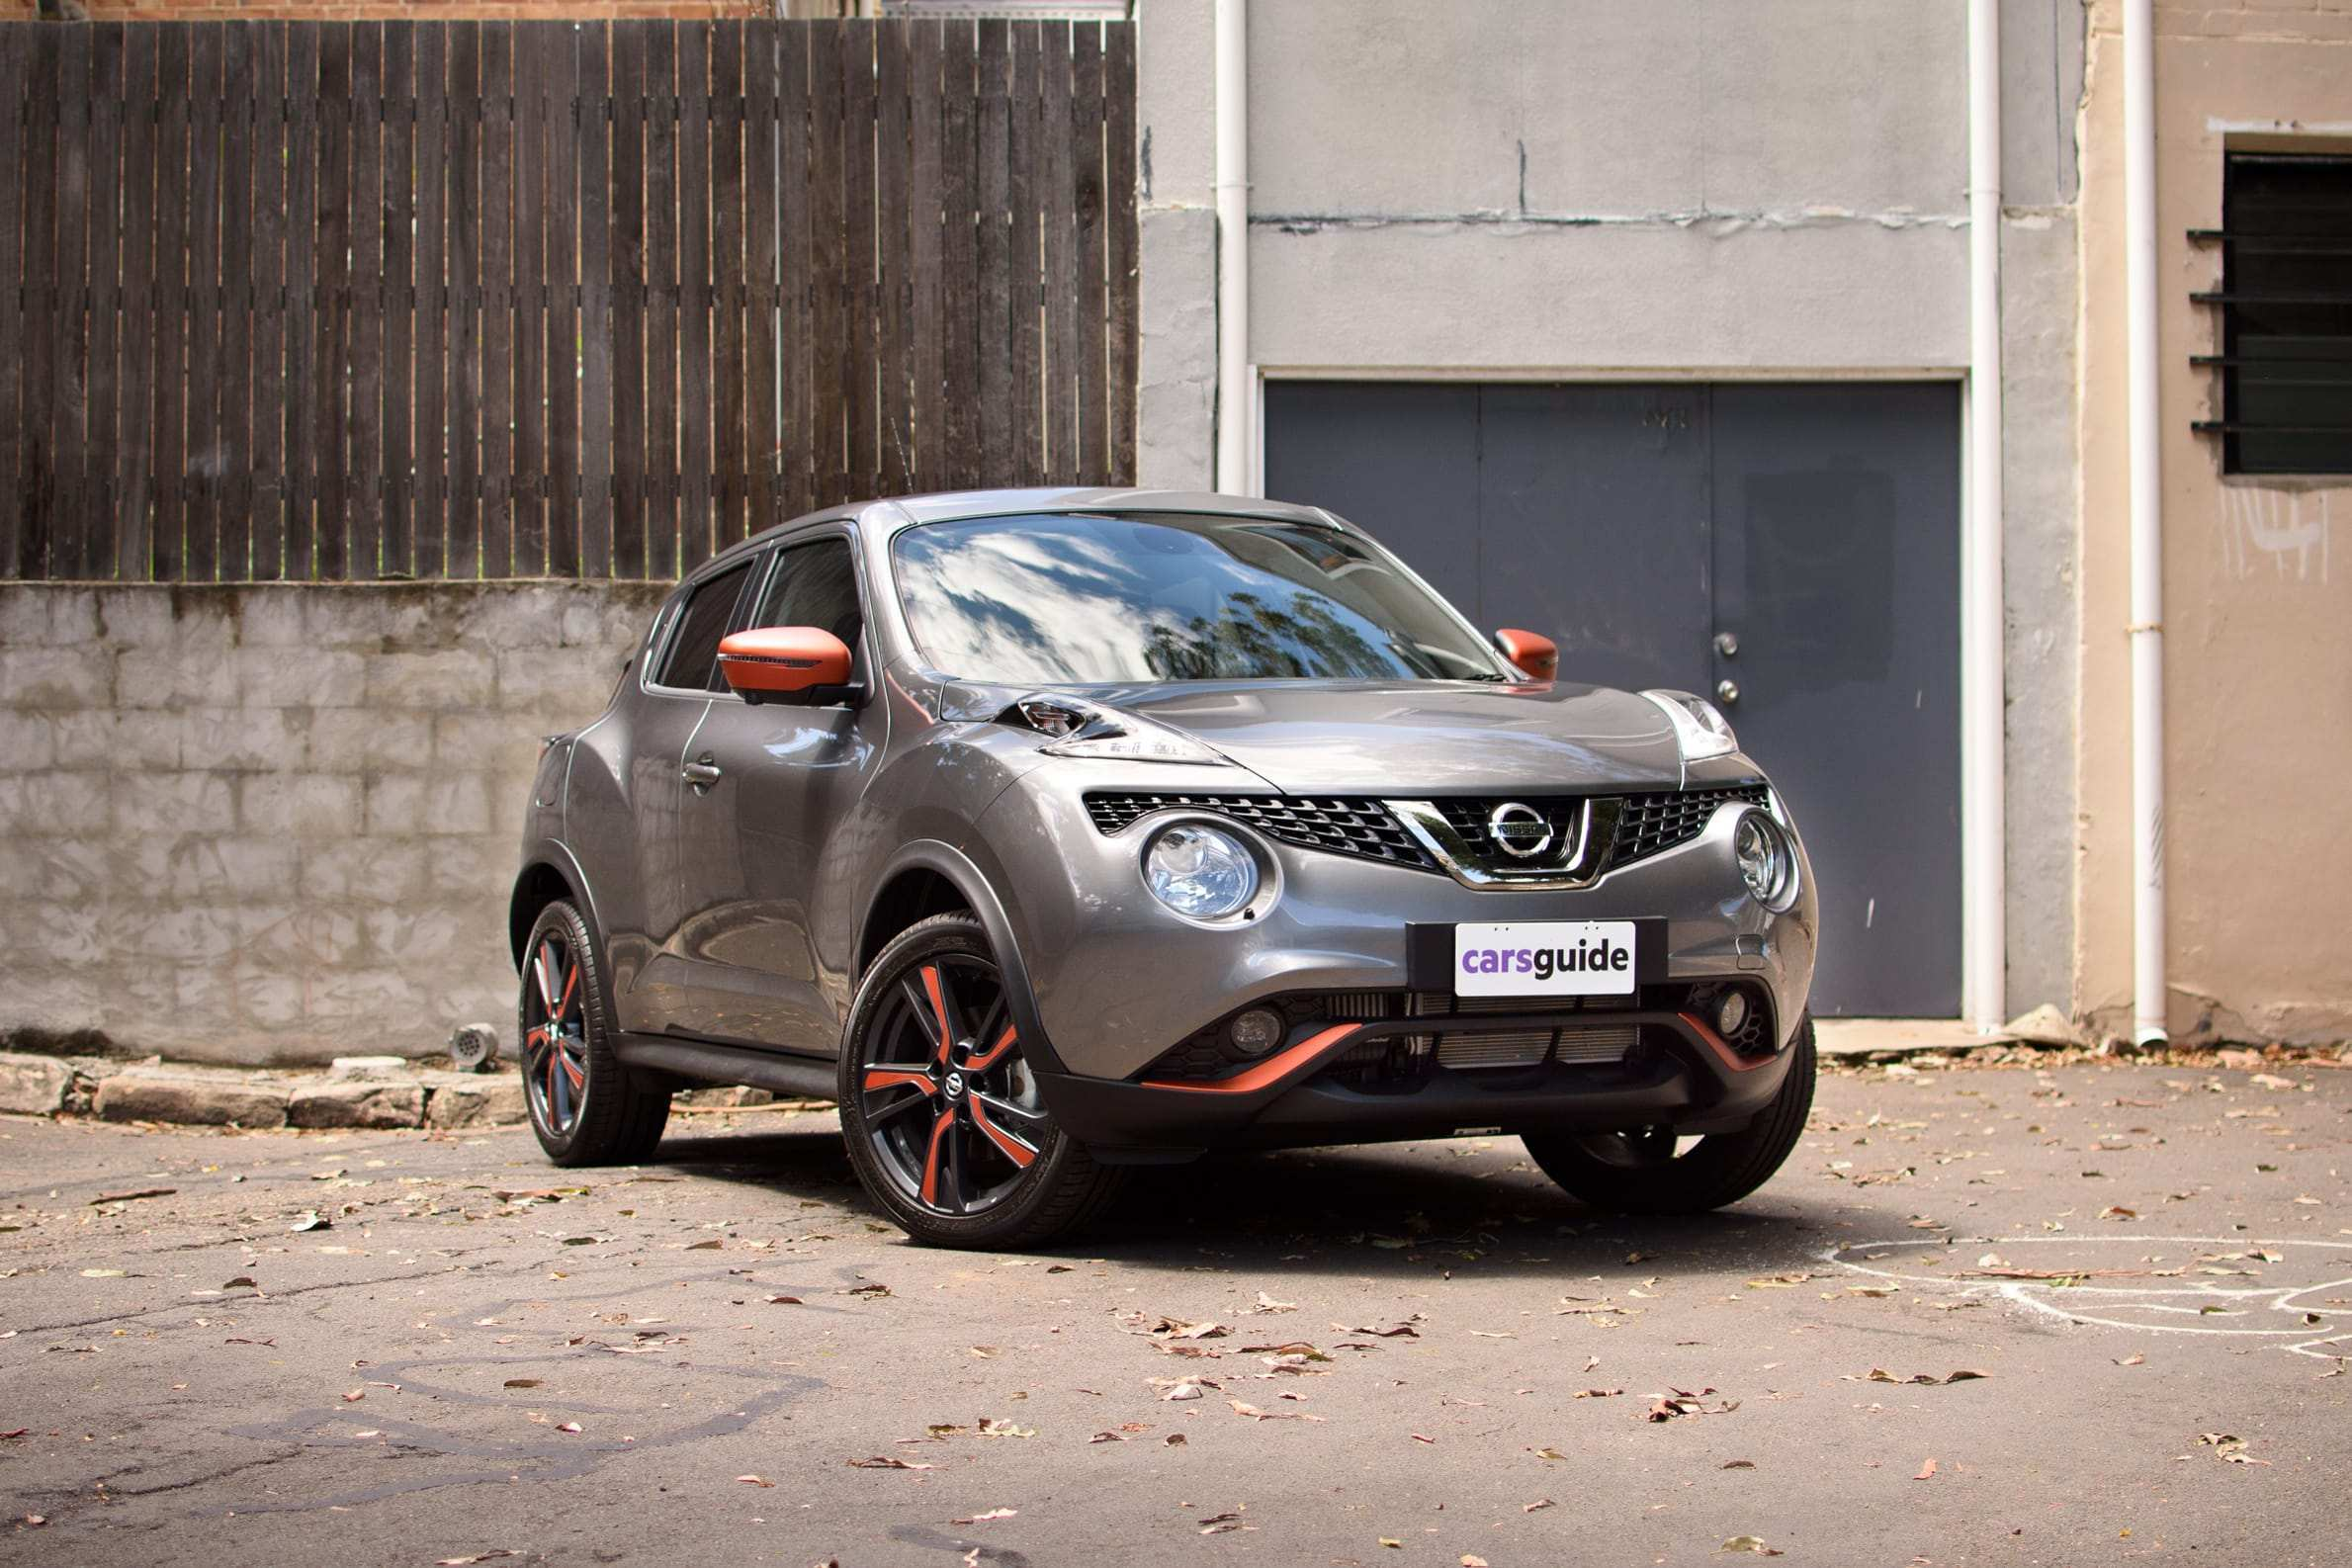 42 All New Nissan Juke 2019 Release Date Release Date And Concept